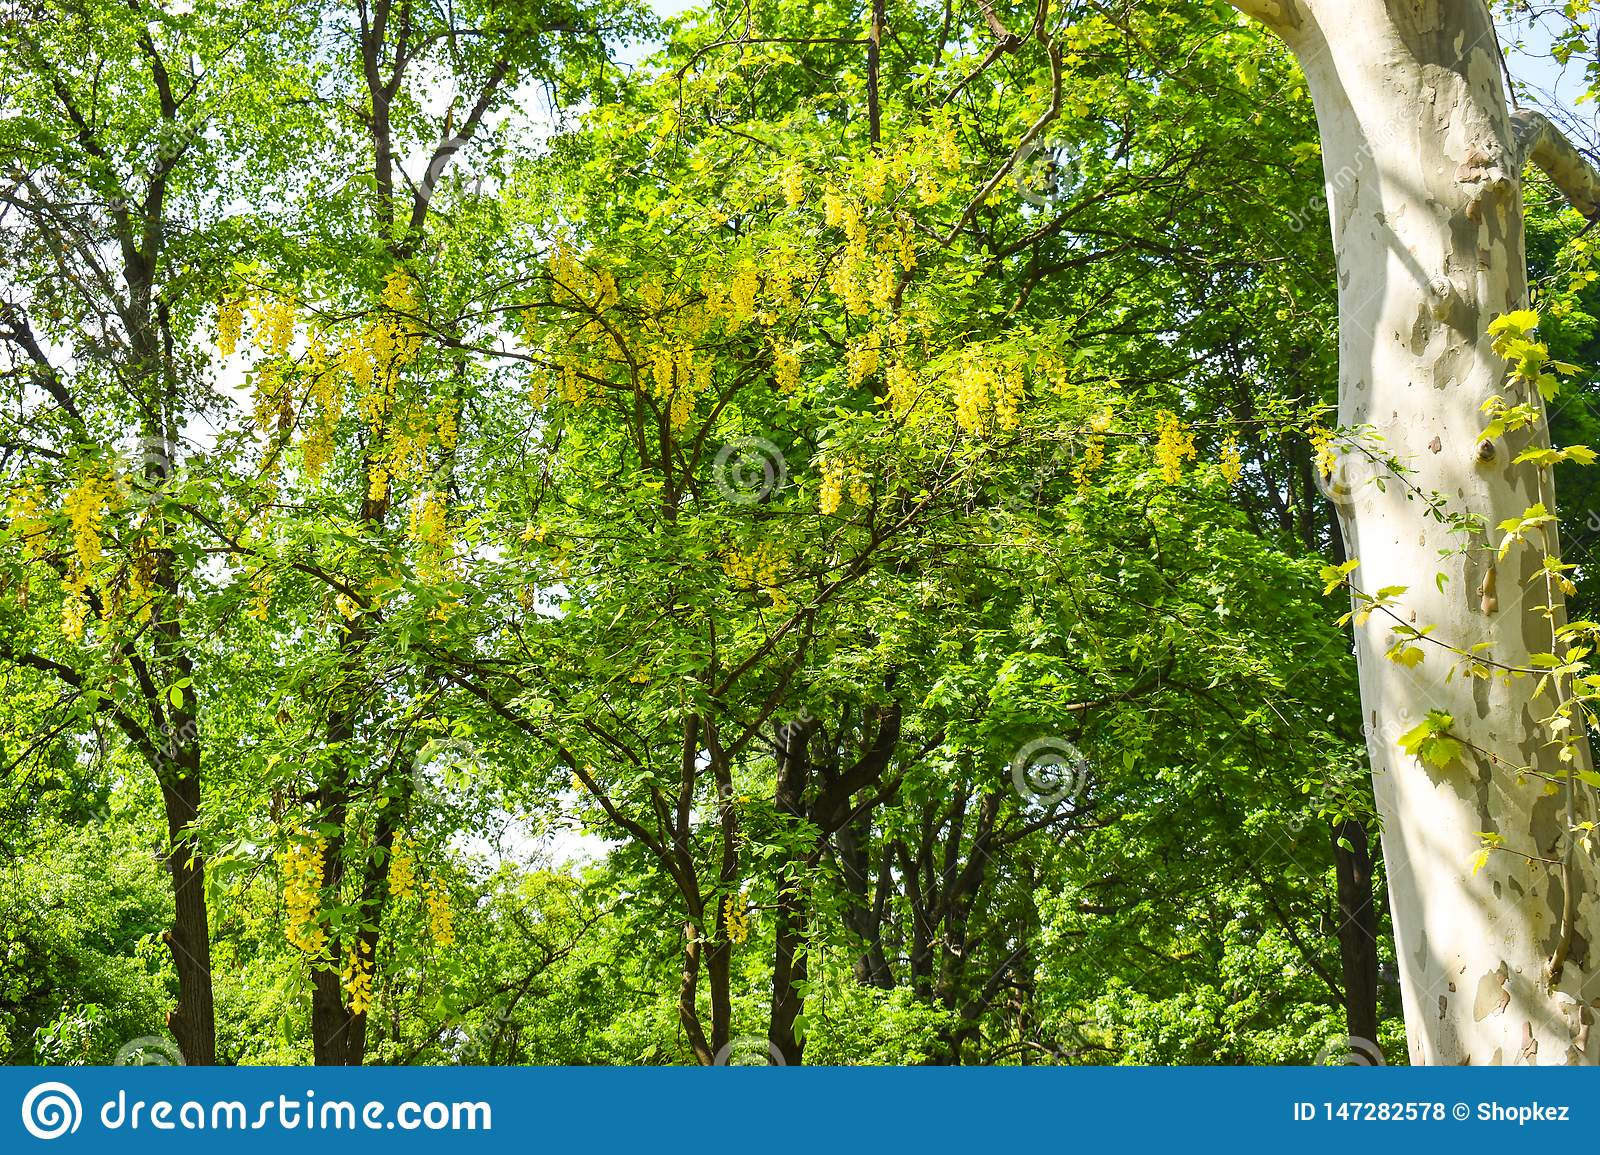 Yellow acacia trees in the city park in a beautiful sunny spring day